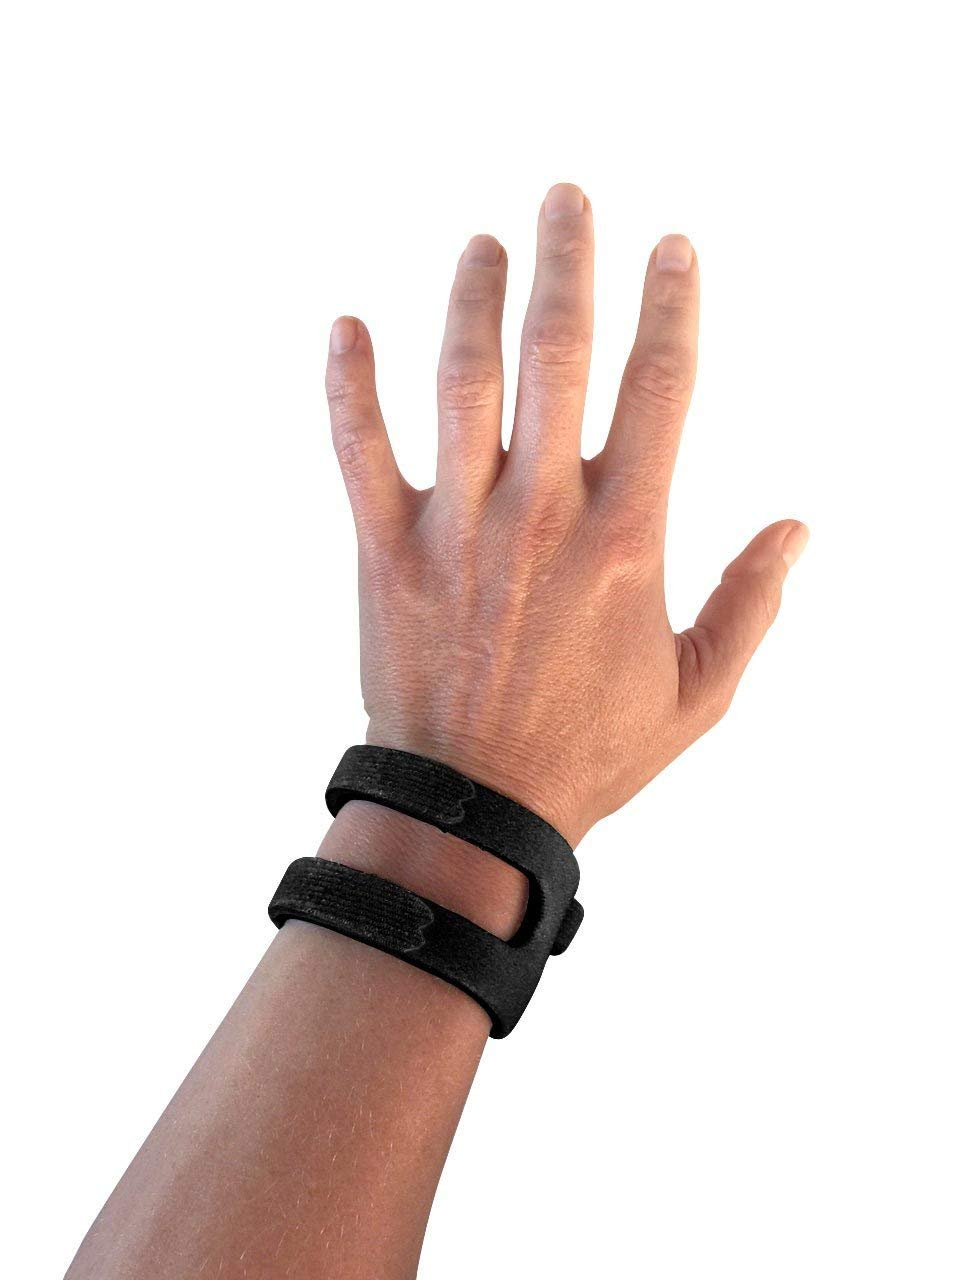 WristWidget - Patented, Adjustable Wrist Support Band For TFCC Tear- Triangular Fibrocartilage Complex Injuries, Ulnar Sided Wrist Pain, Weight Bearing Strain - Left Or Right Hand - One Size Fits Most